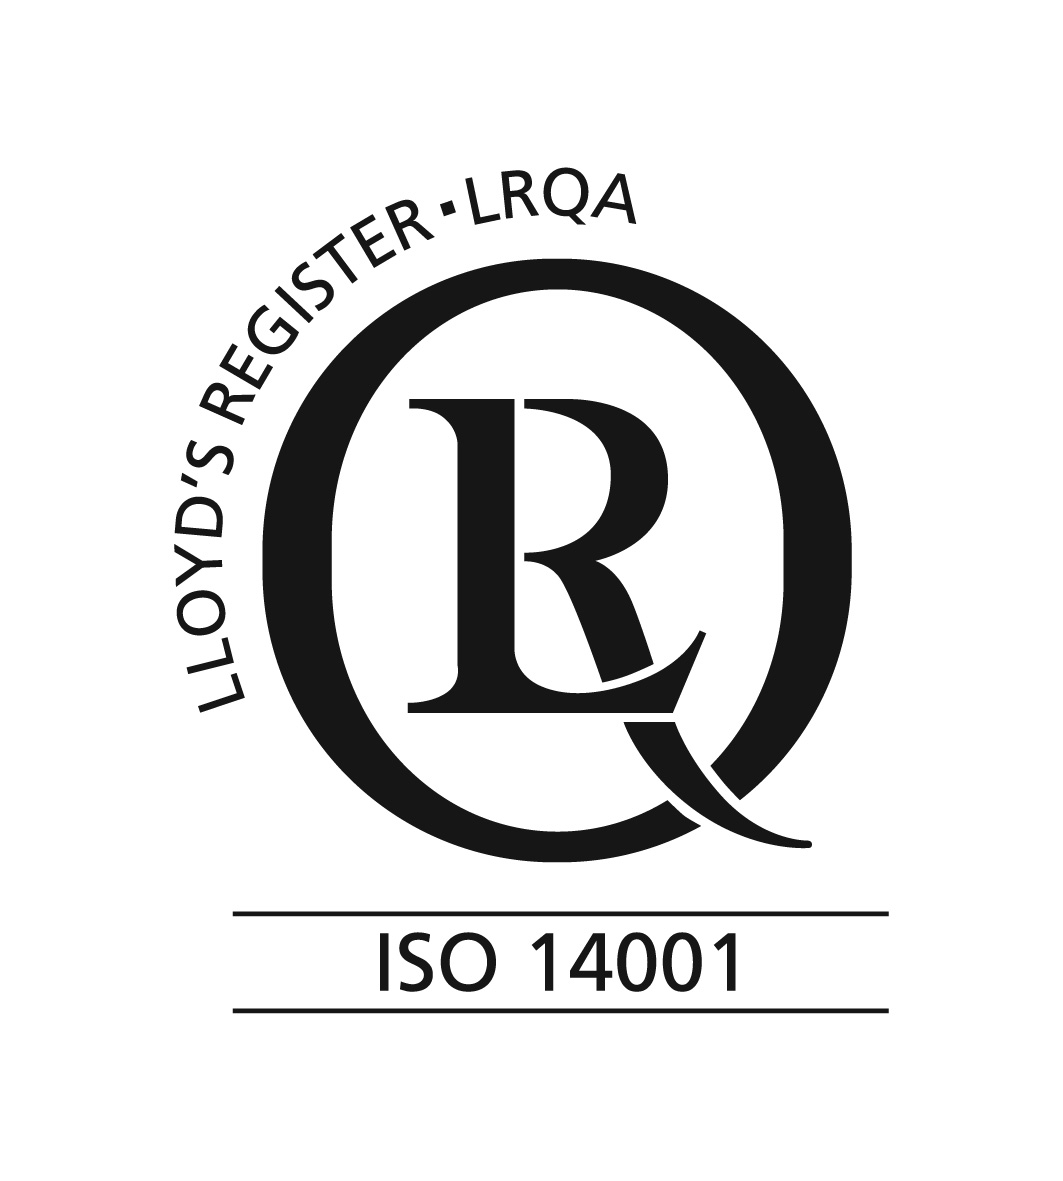 ISO 14001:2004 for Environmental Management system